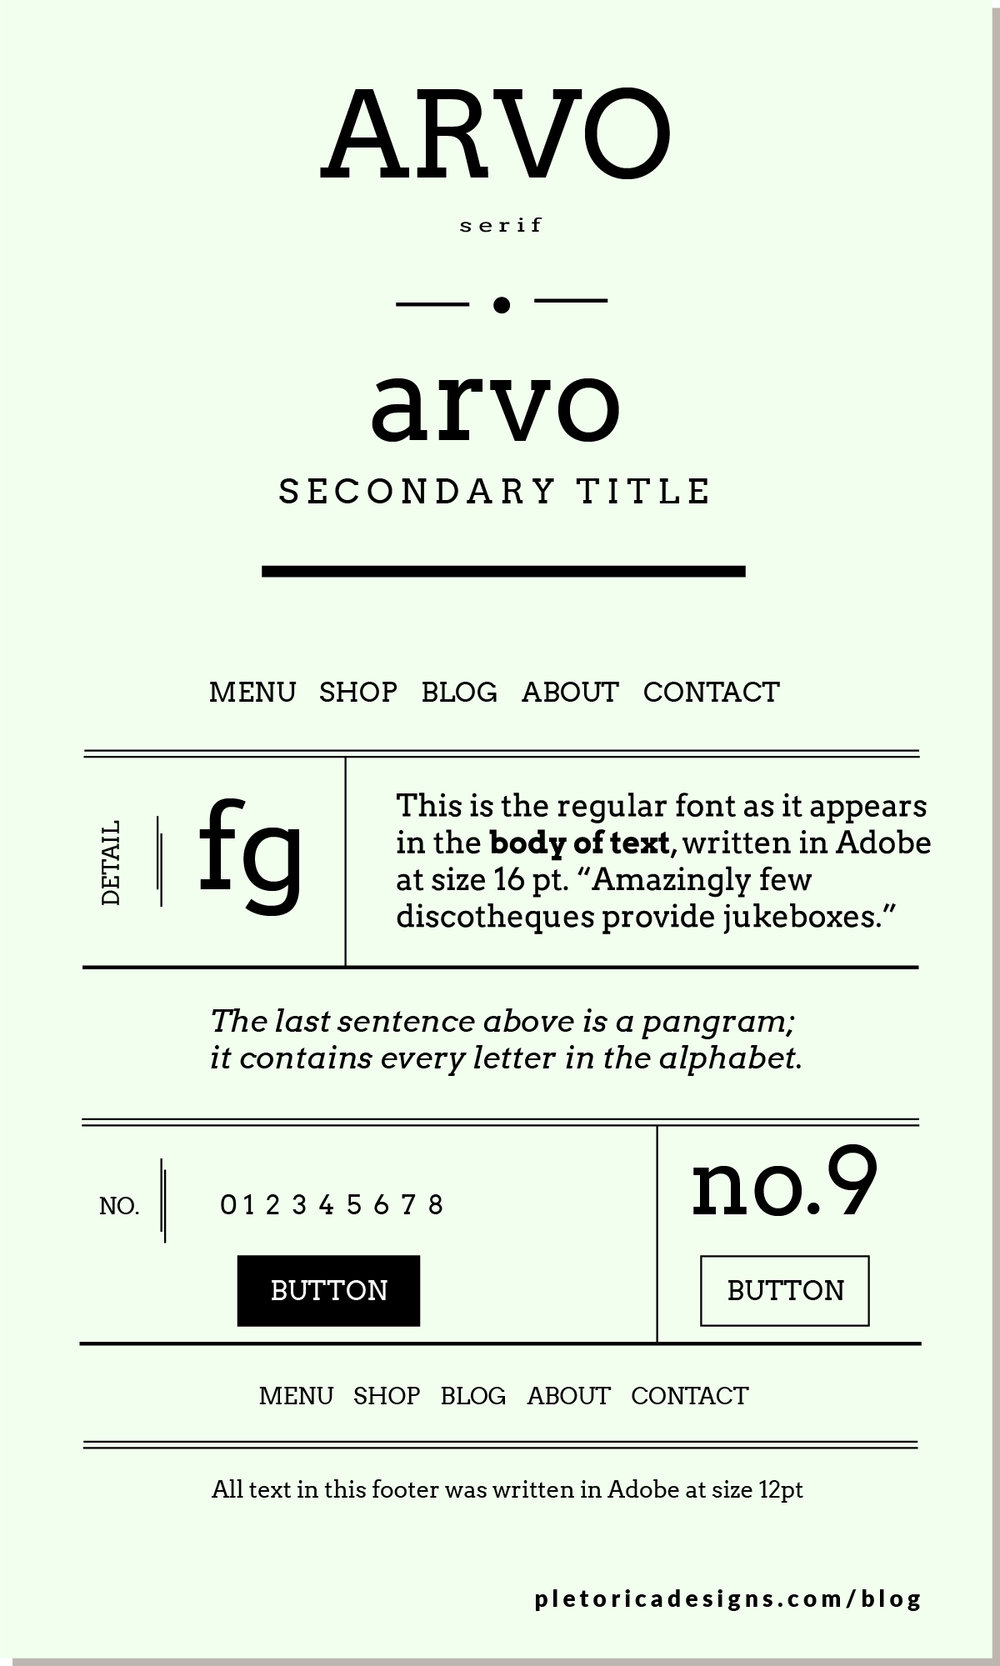 LET'S TYPE: Arvo — PLETÓRICA DESIGNS